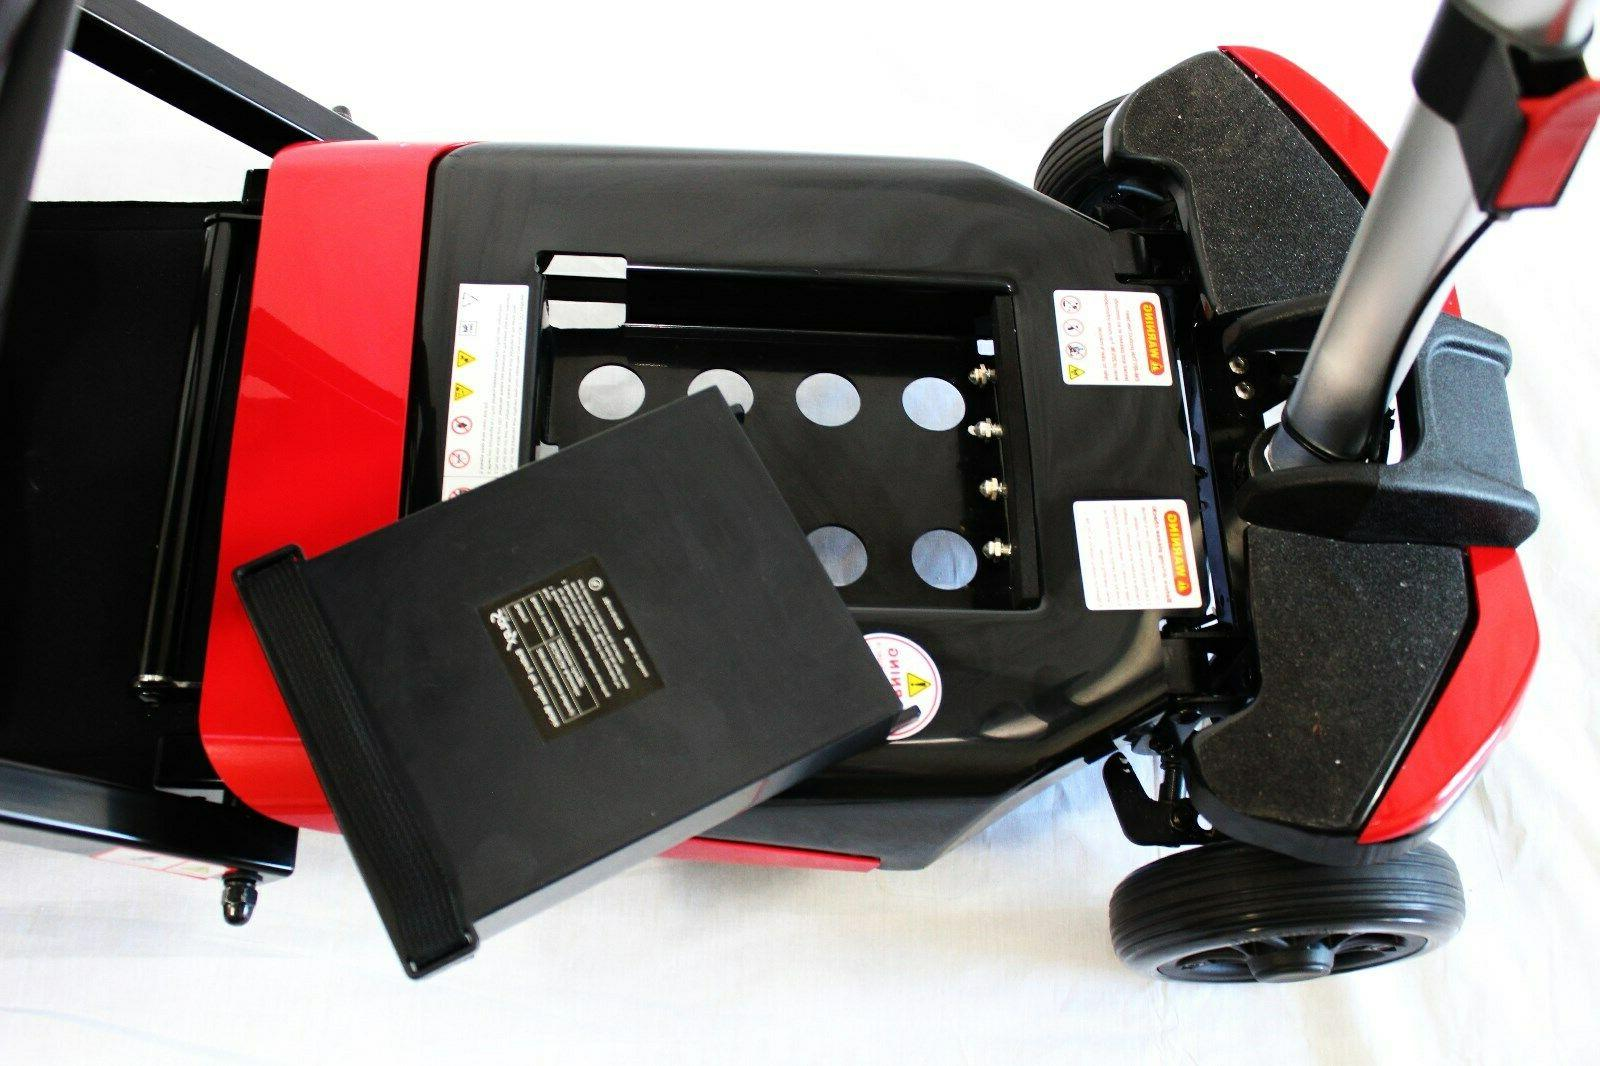 Solax Scooter Transformer Mobie XLR Li - Parts from Mobility